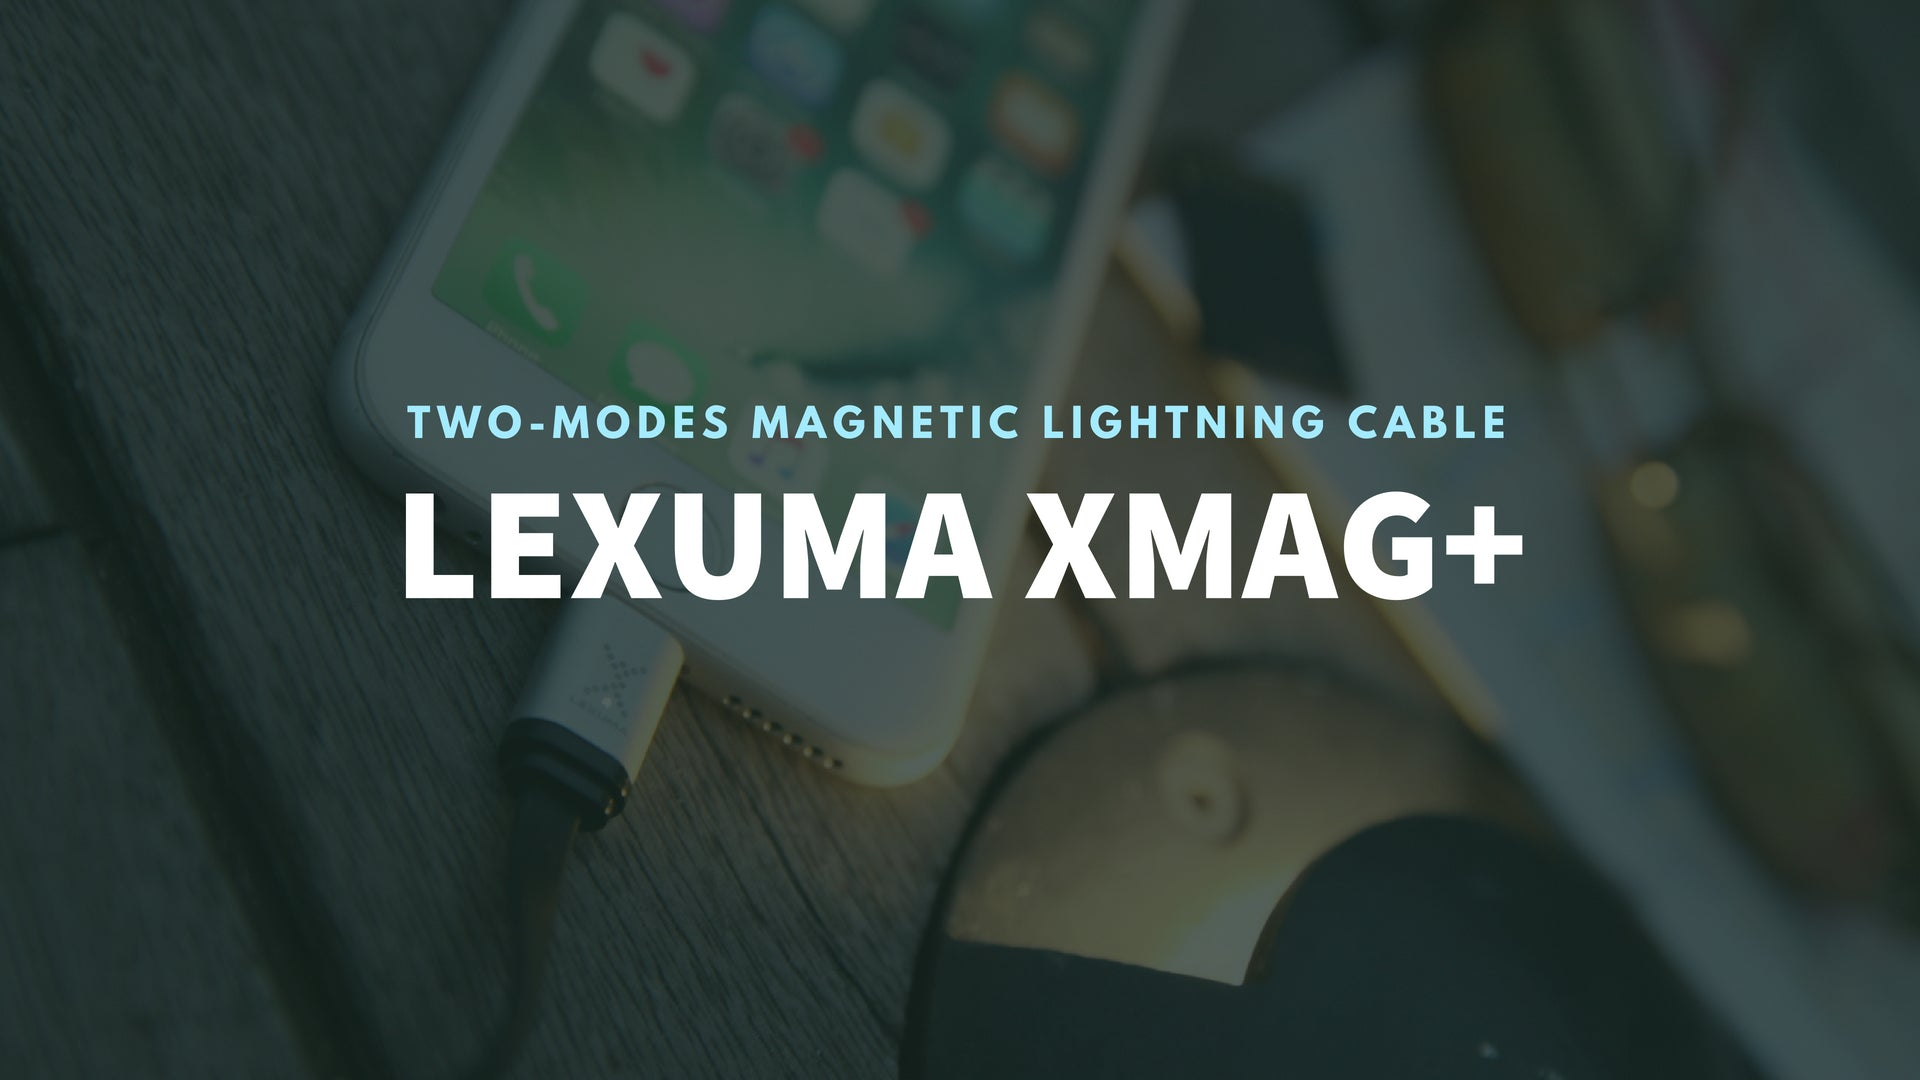 GadgetiCloud Lexuma 辣數碼 XMAG Plus XMAG-LC-Plus – Magnetic Lightning Cable COMBO discount package (For Apple Devices) - GadgetiCloud Dual Charging Modes Lightning USB Cable Mobile accessories for iPhone 磁吸充電線 iphone 充電線 xs max